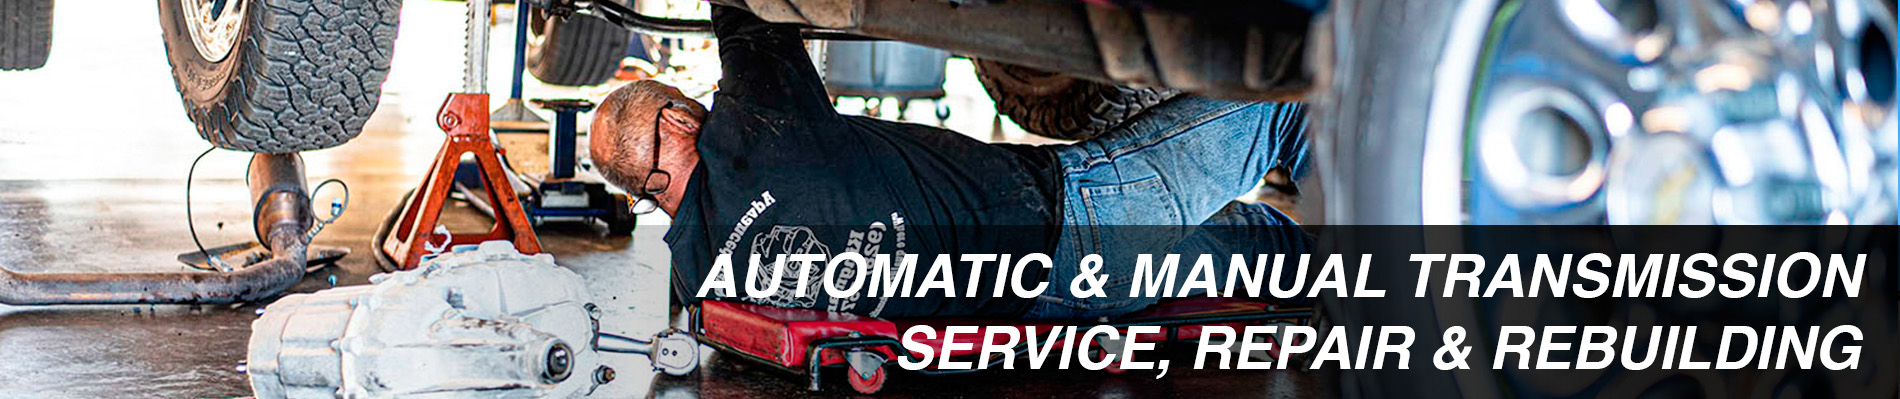 Bumper to Bumper Auto Repair and Maintenance